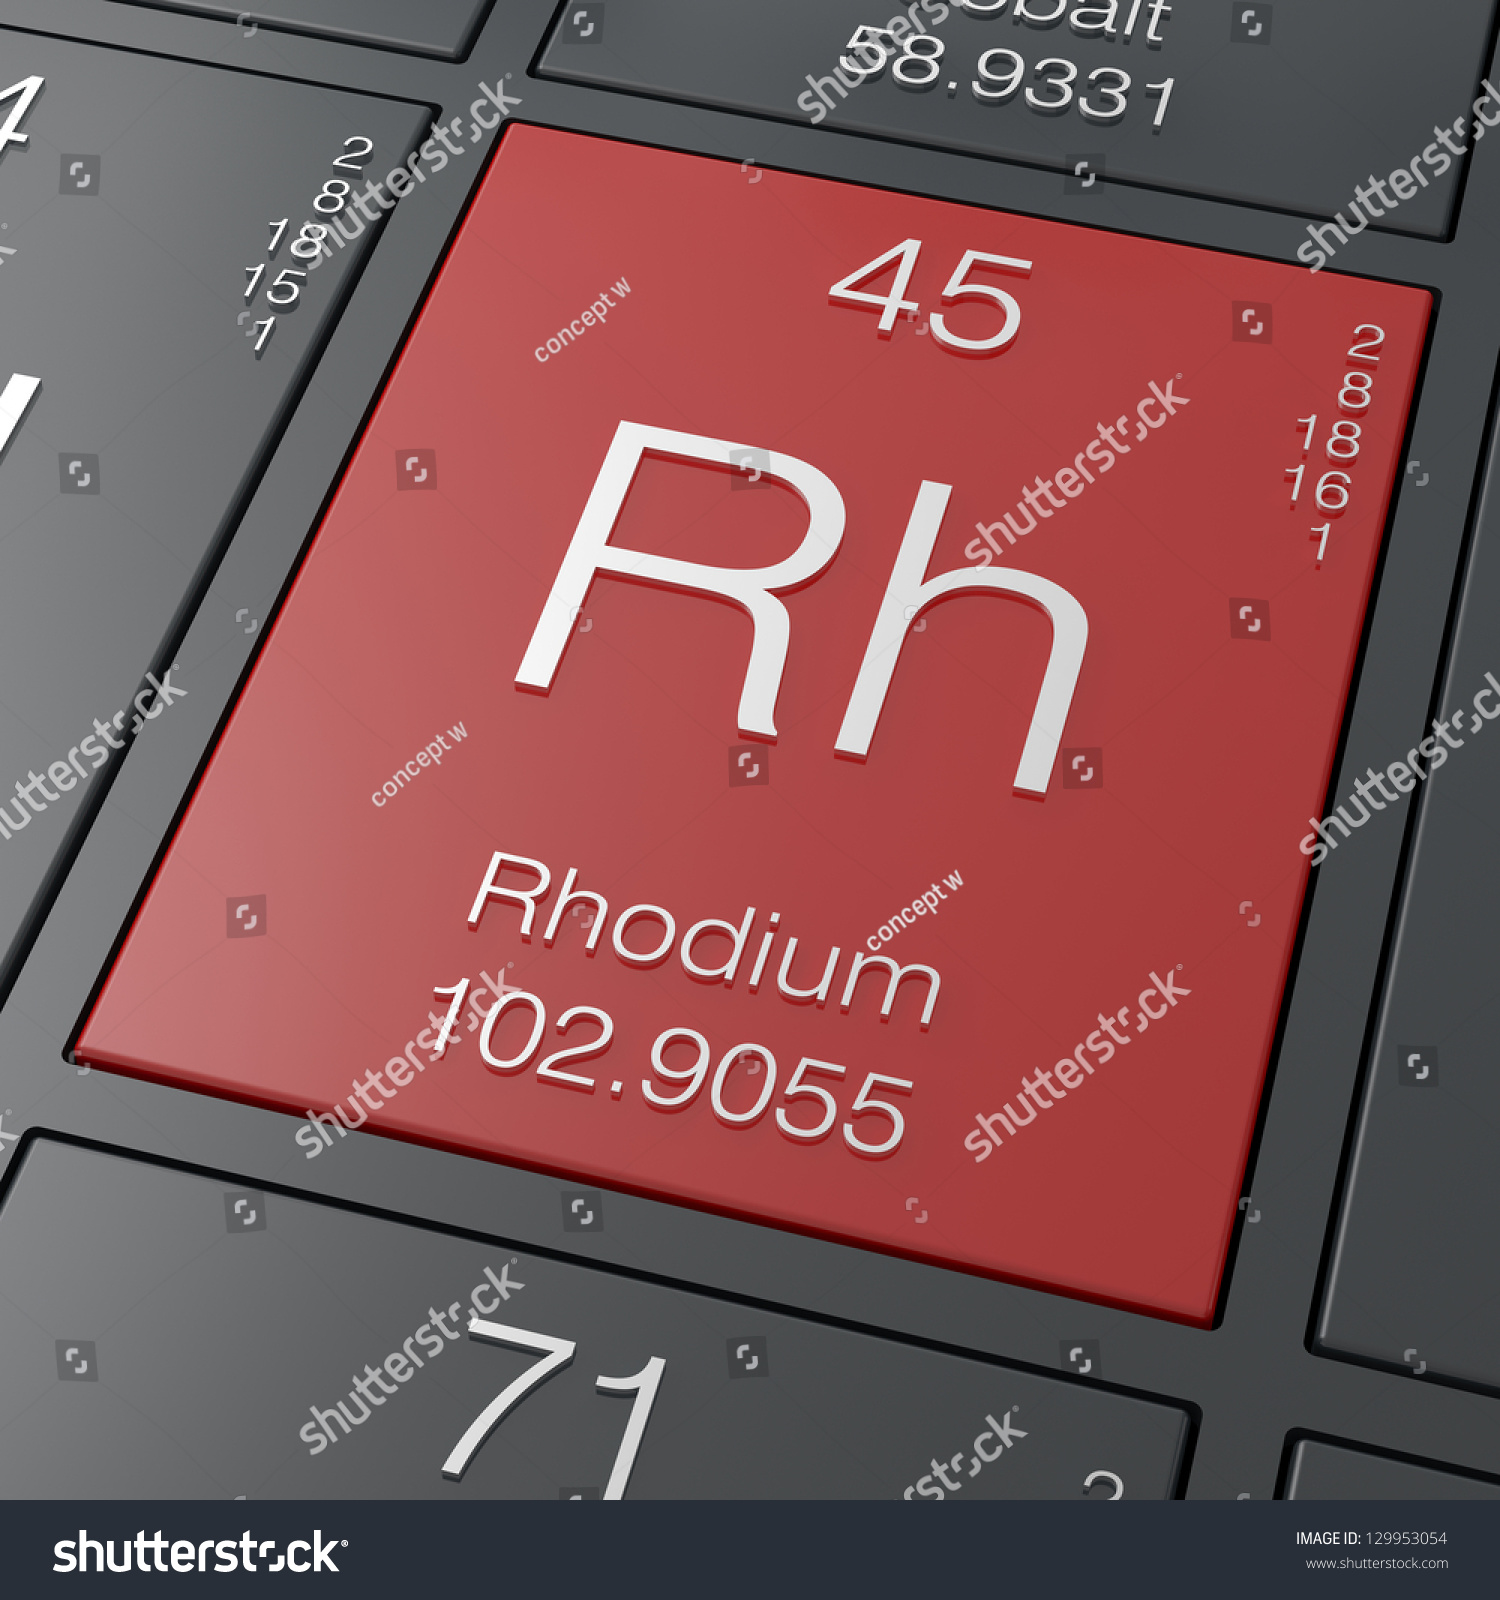 Rhodium element periodic table stock illustration 129953054 rhodium element from periodic table gamestrikefo Image collections